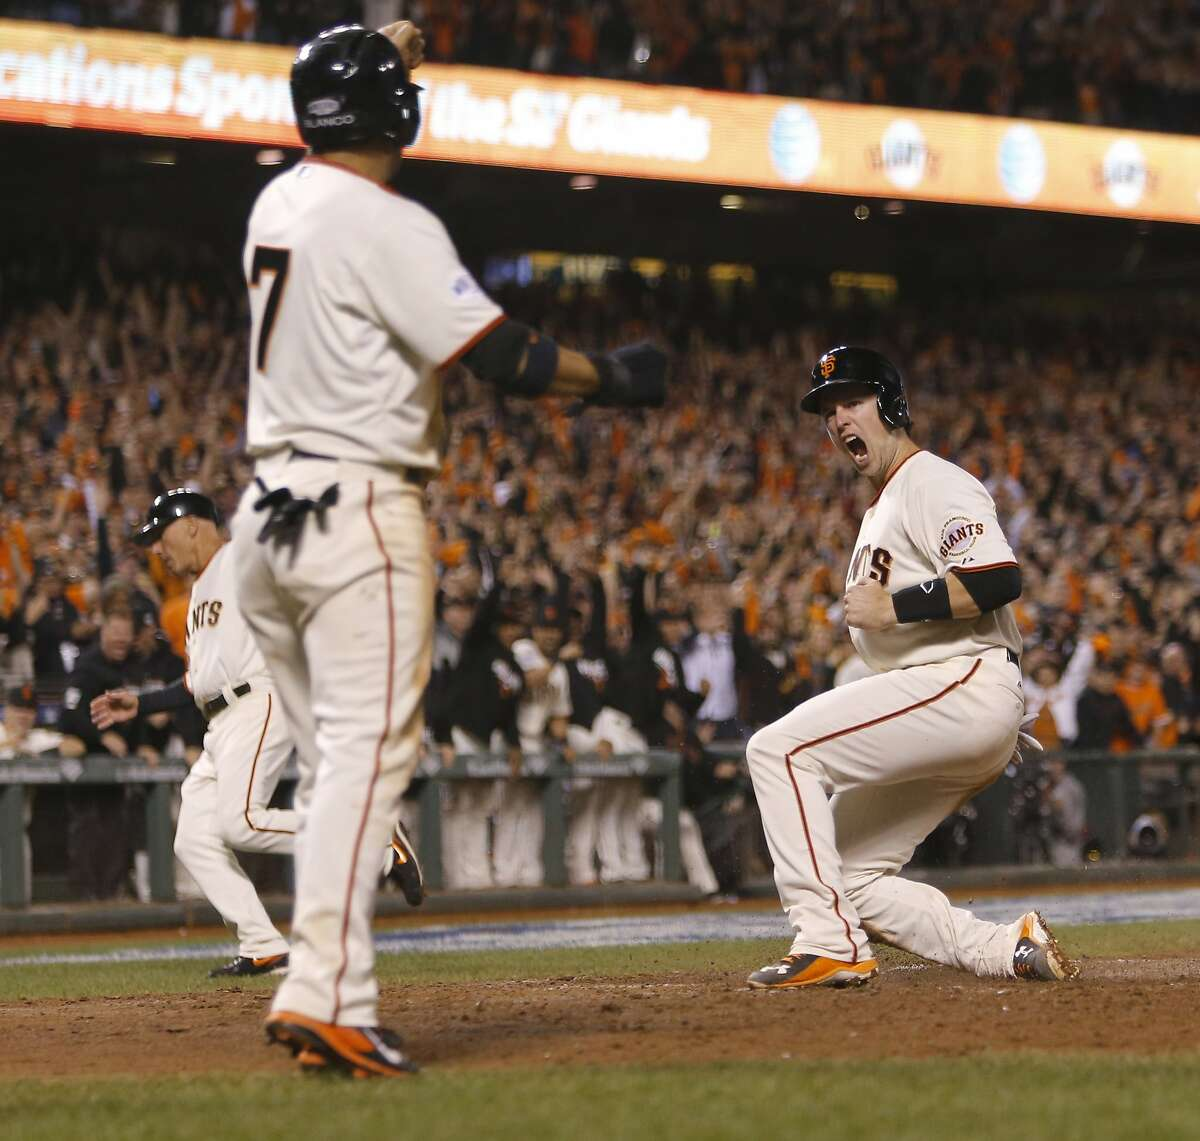 Giants Buster Posey scores reacts after scoring in the sixth on a two run single by Pablo Sandoval during Game 4 of the World Series at AT&T Park on Saturday, Oct. 25, 2014 in San Francisco, Calif.